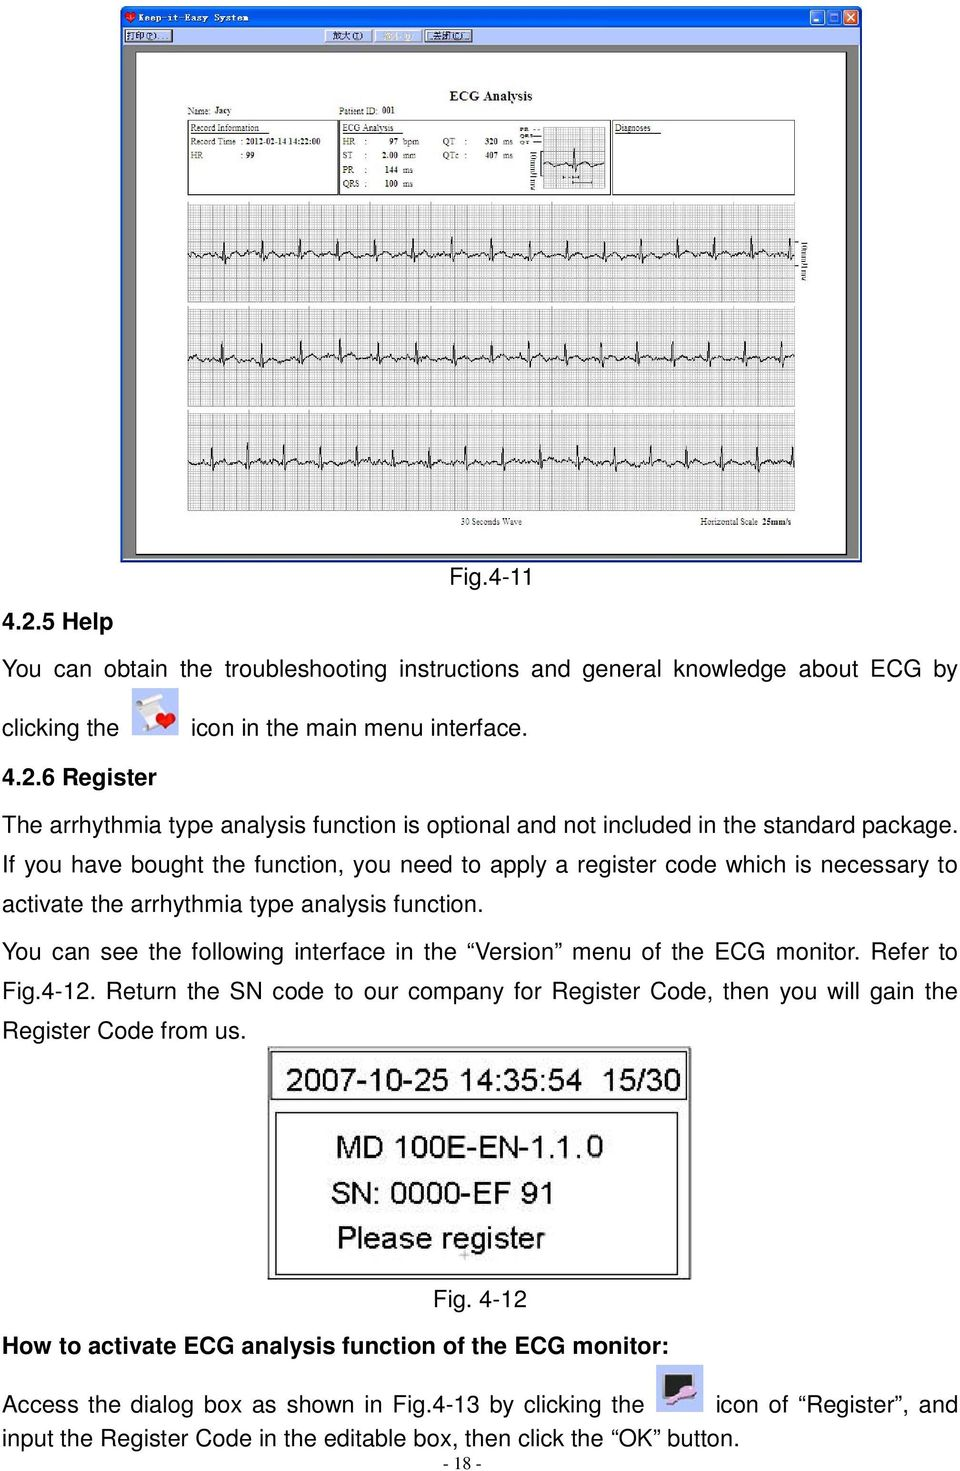 You can see the following interface in the Version menu of the ECG monitor. Refer to Fig.4-12. Return the SN code to our company for Register Code, then you will gain the Register Code from us. Fig. 4-12 How to activate ECG analysis function of the ECG monitor: Access the dialog box as shown in Fig.